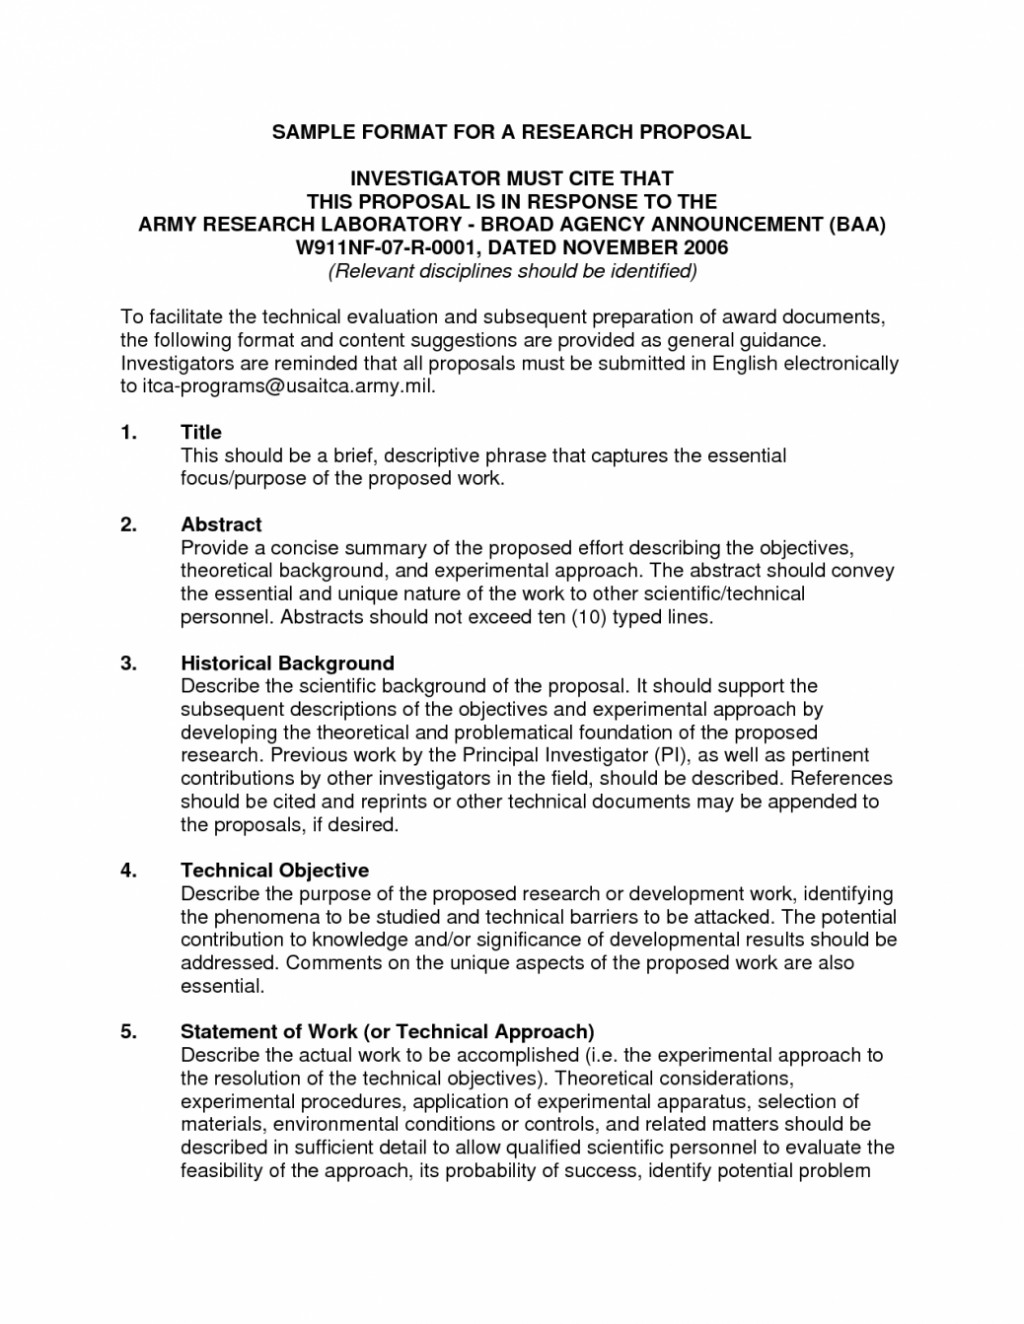 019 Research Paper Proposing Solution Essay Examples Template Topics For Problem Environmental Problems And Proposal 1038x1343 High Frightening School Outline Example Large